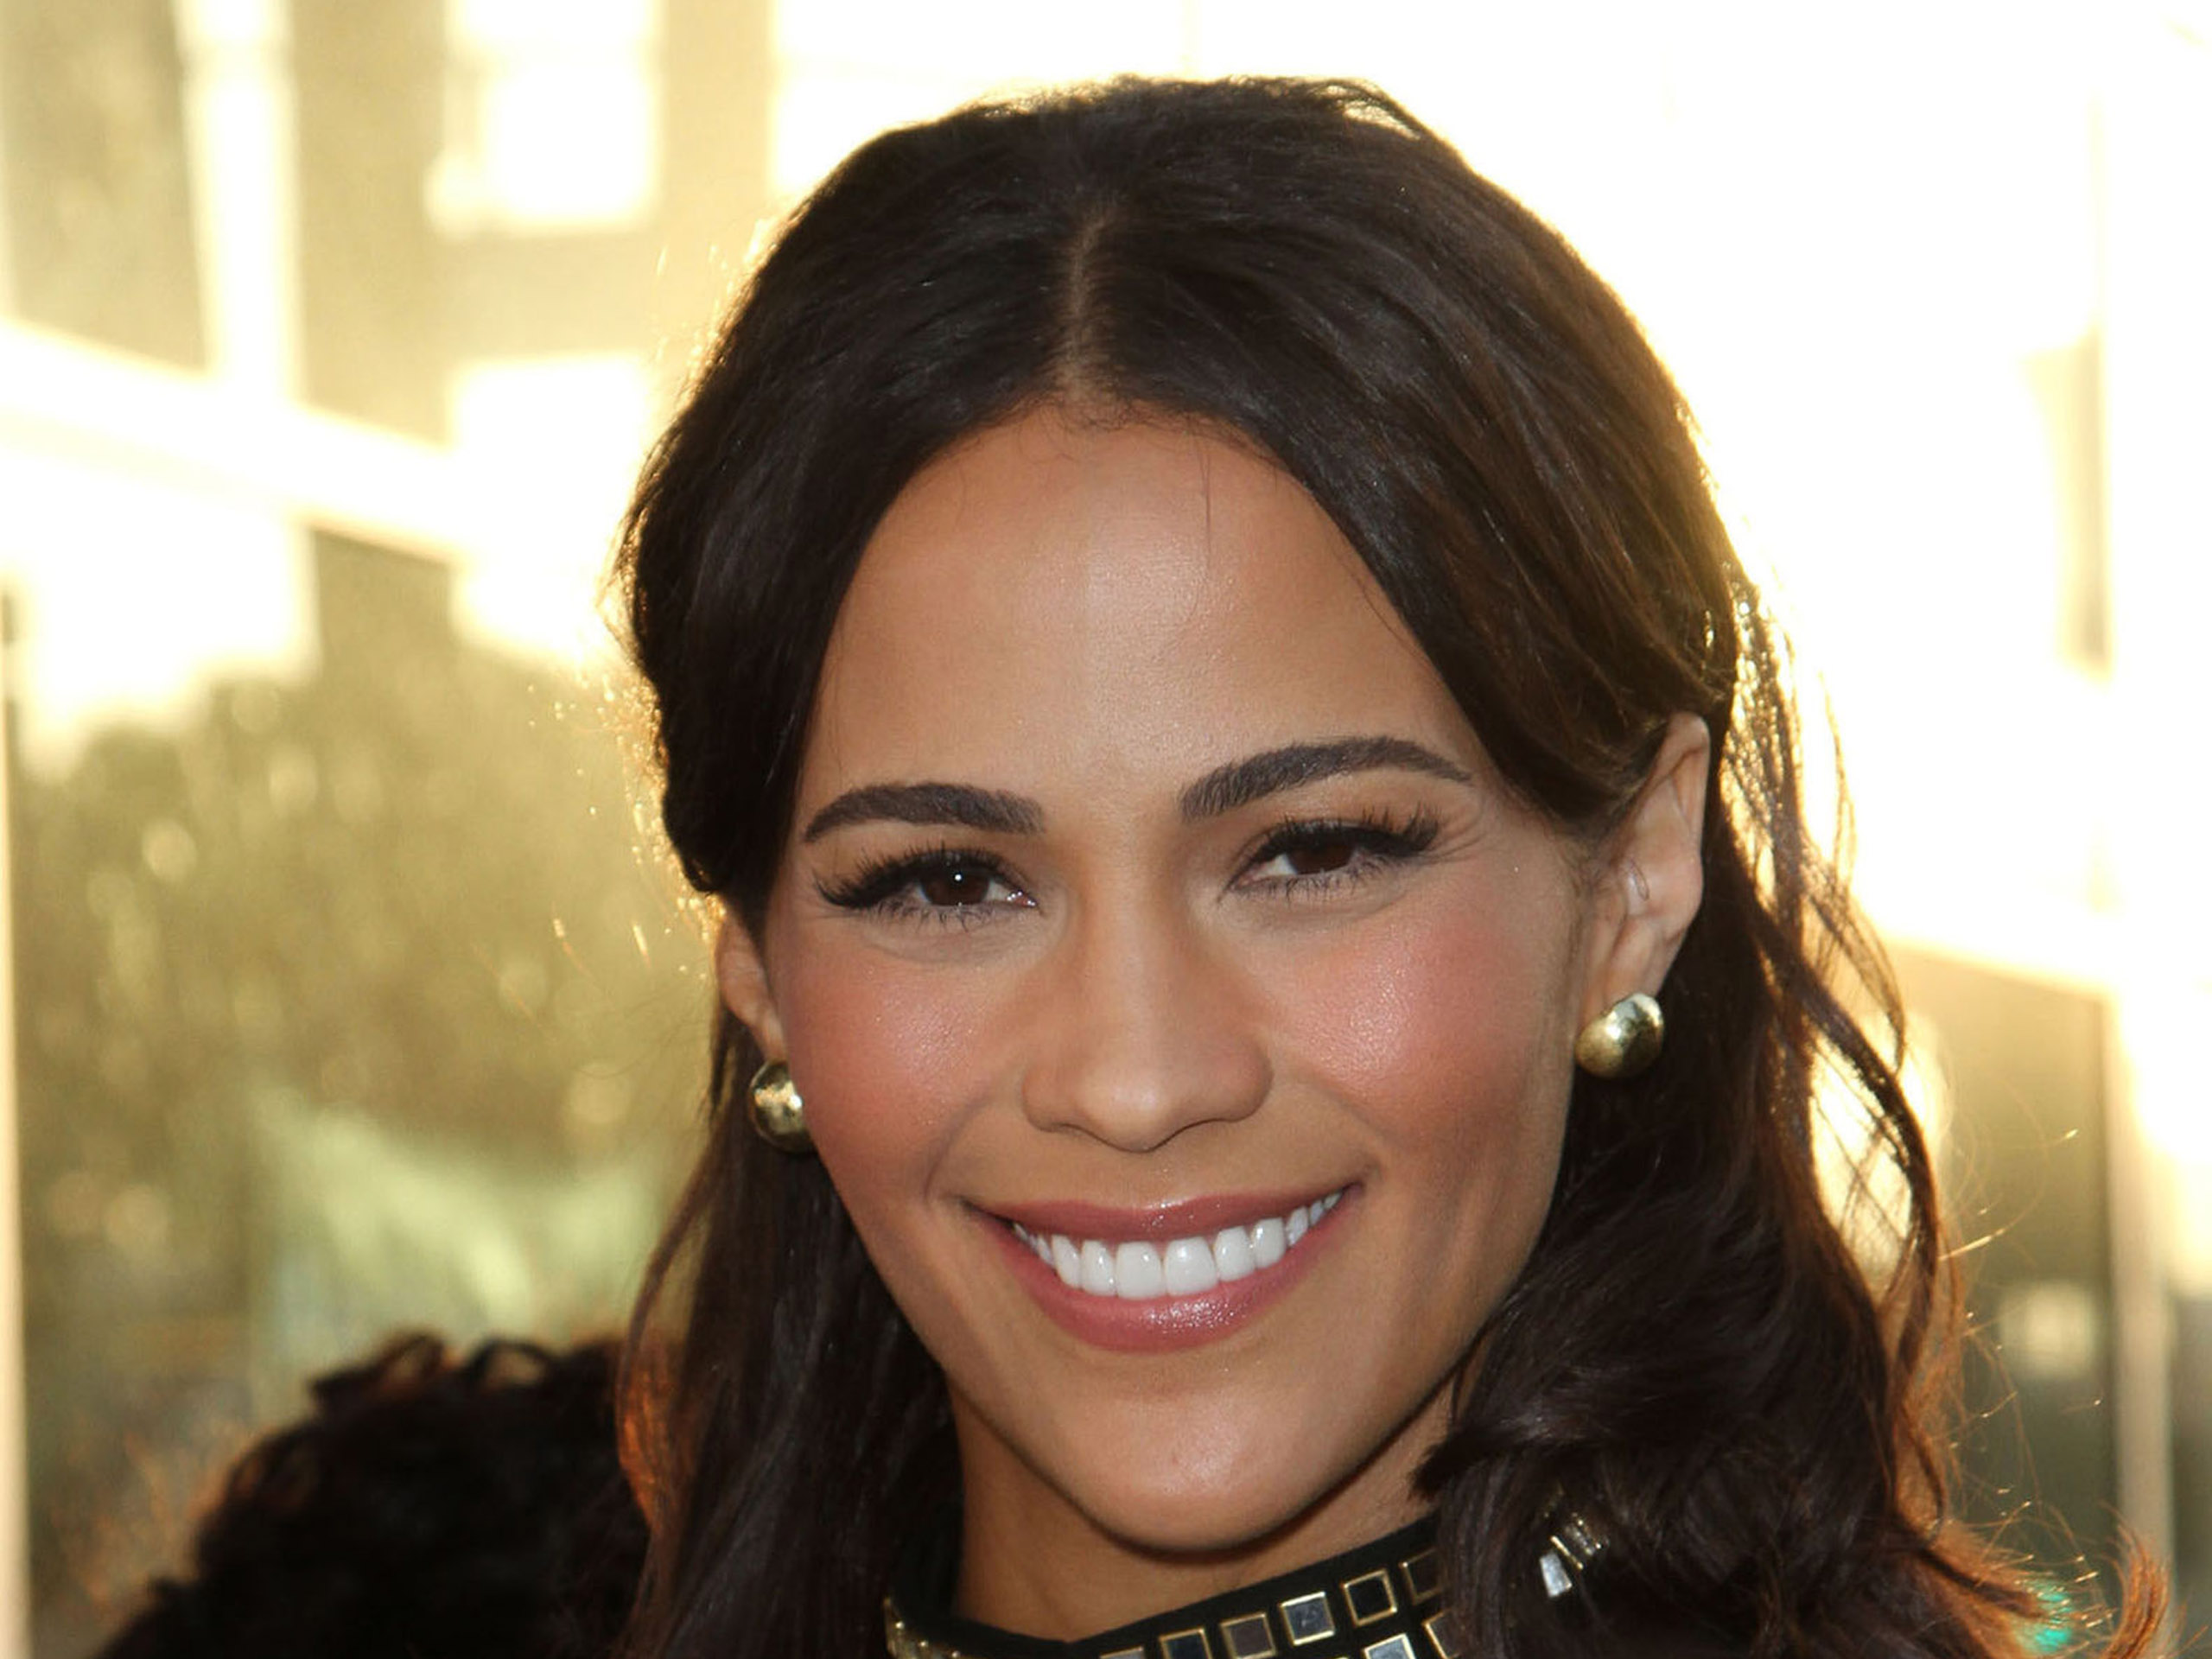 paula patton | free desktop wallpapers for widescreen, hd and mobile